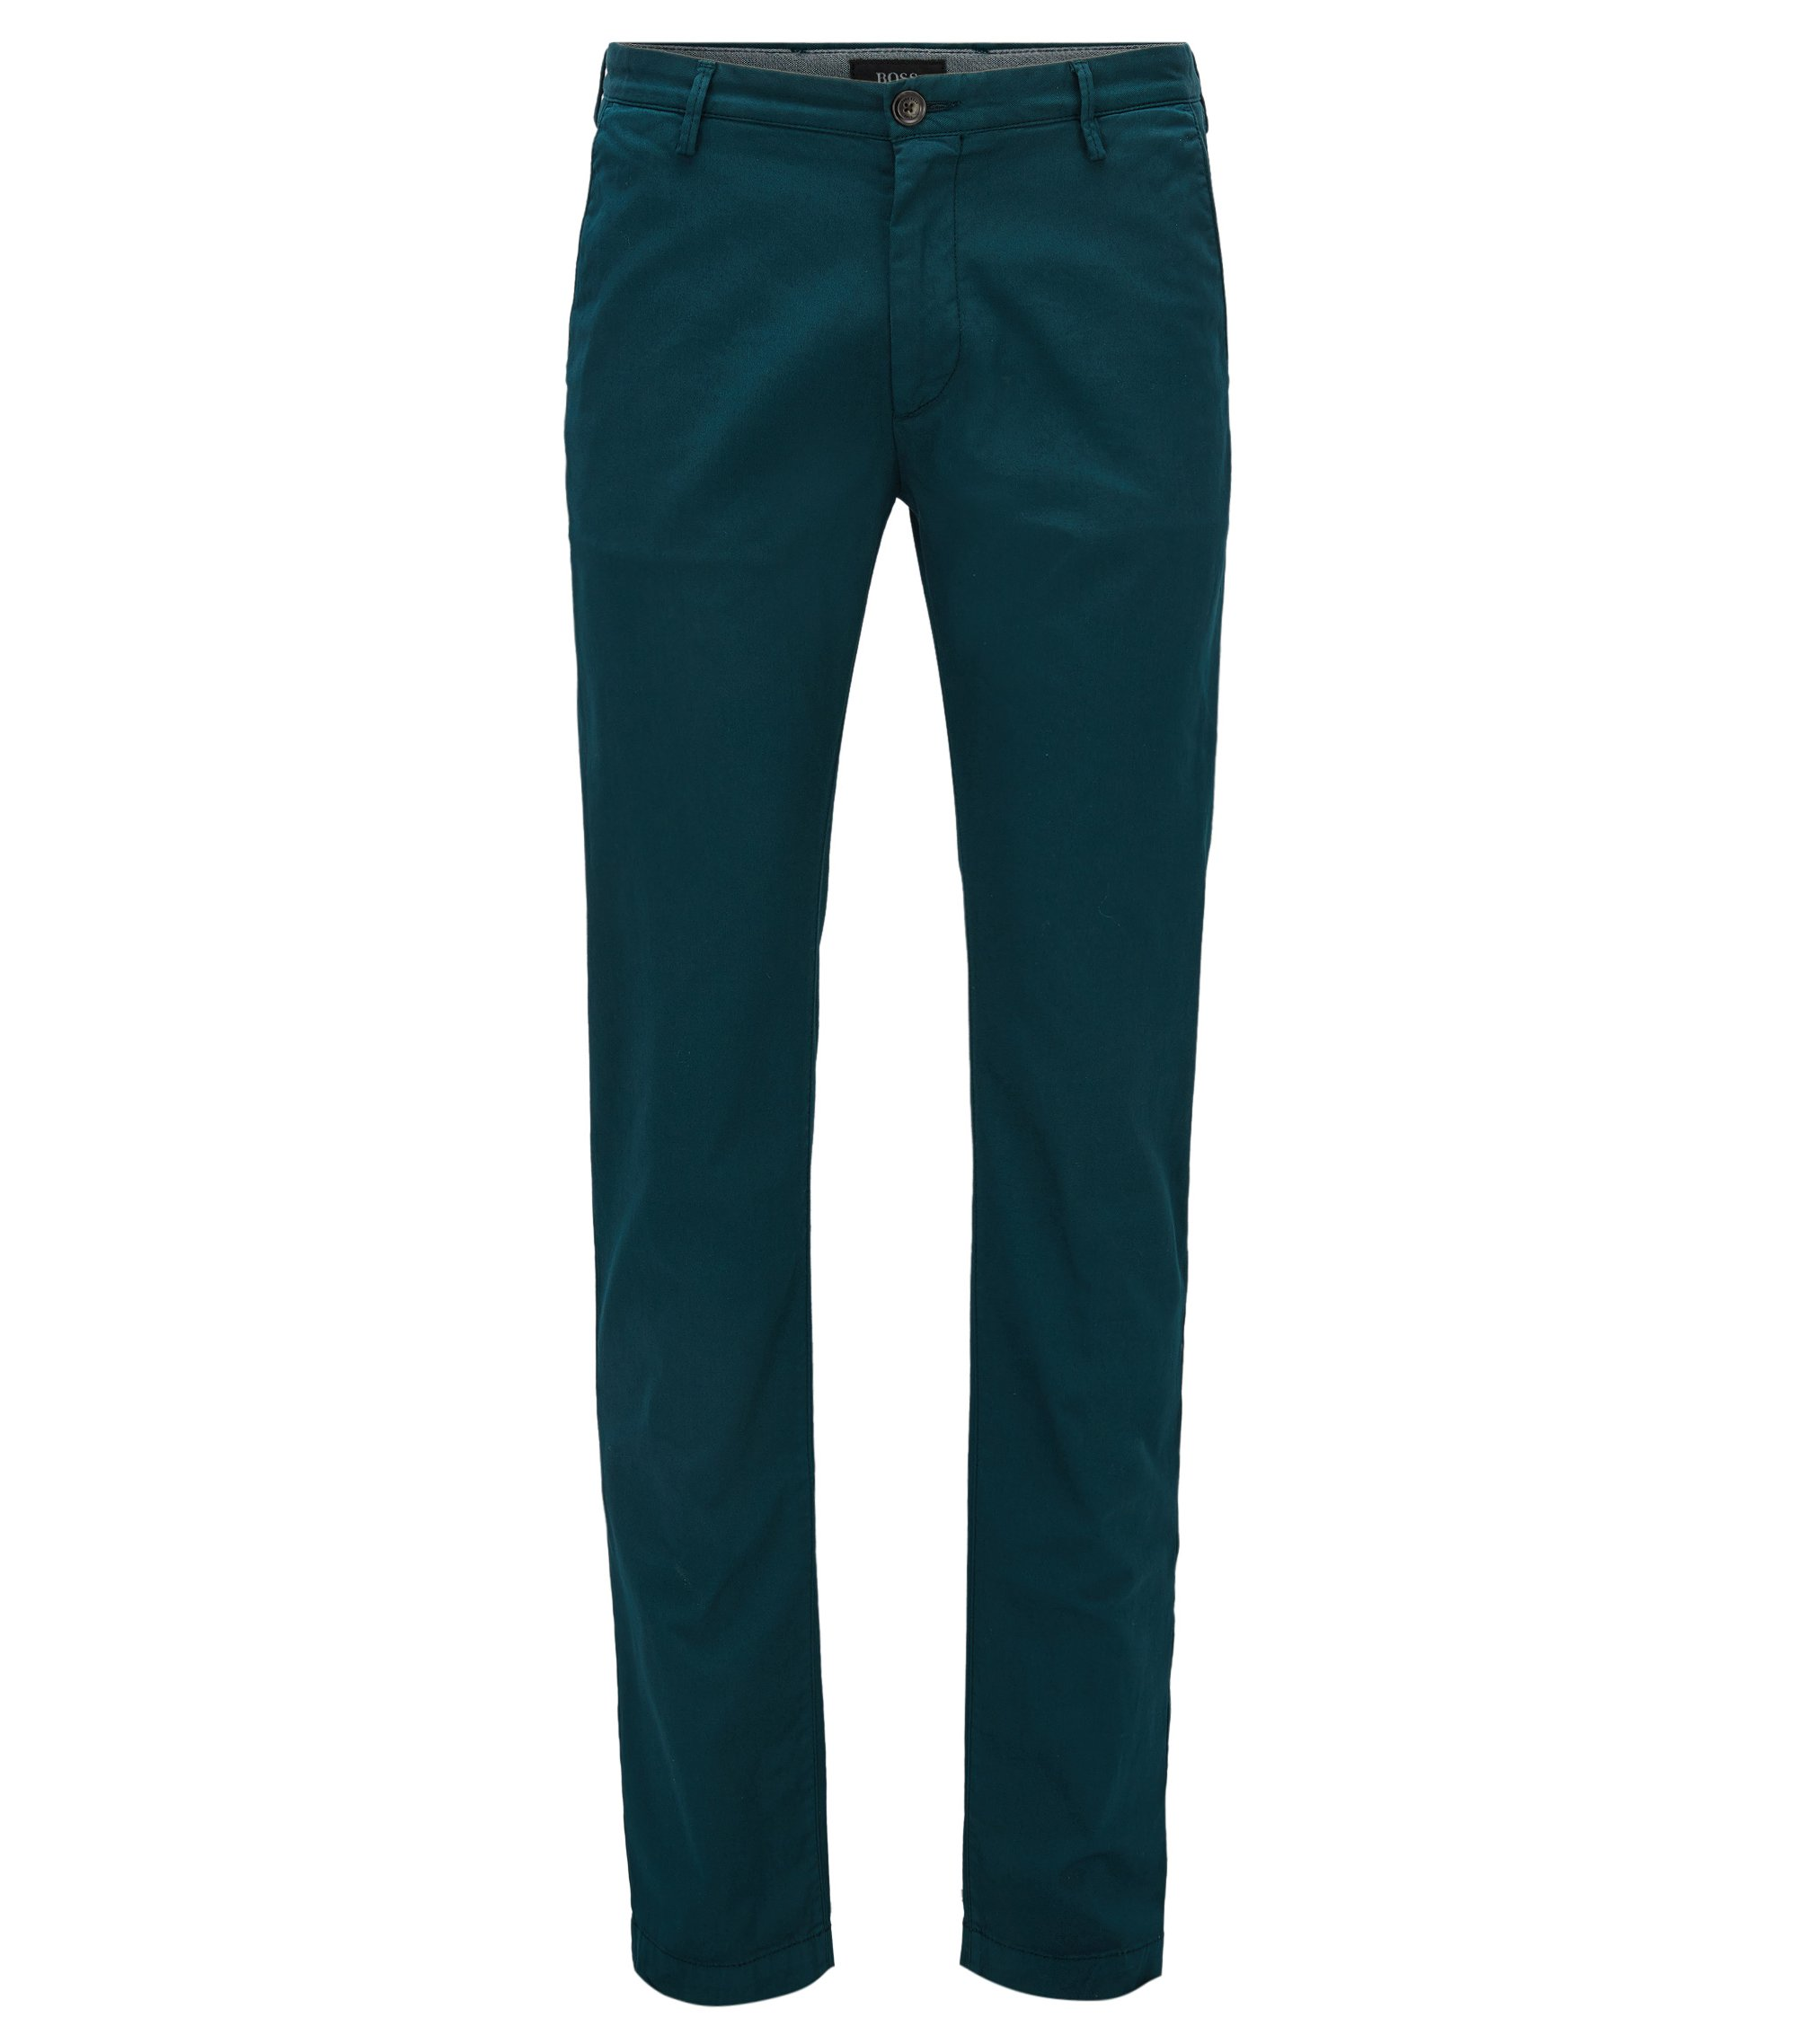 Cotton Stretch Chino Pant, Slim Fit | Rice D, Open Green